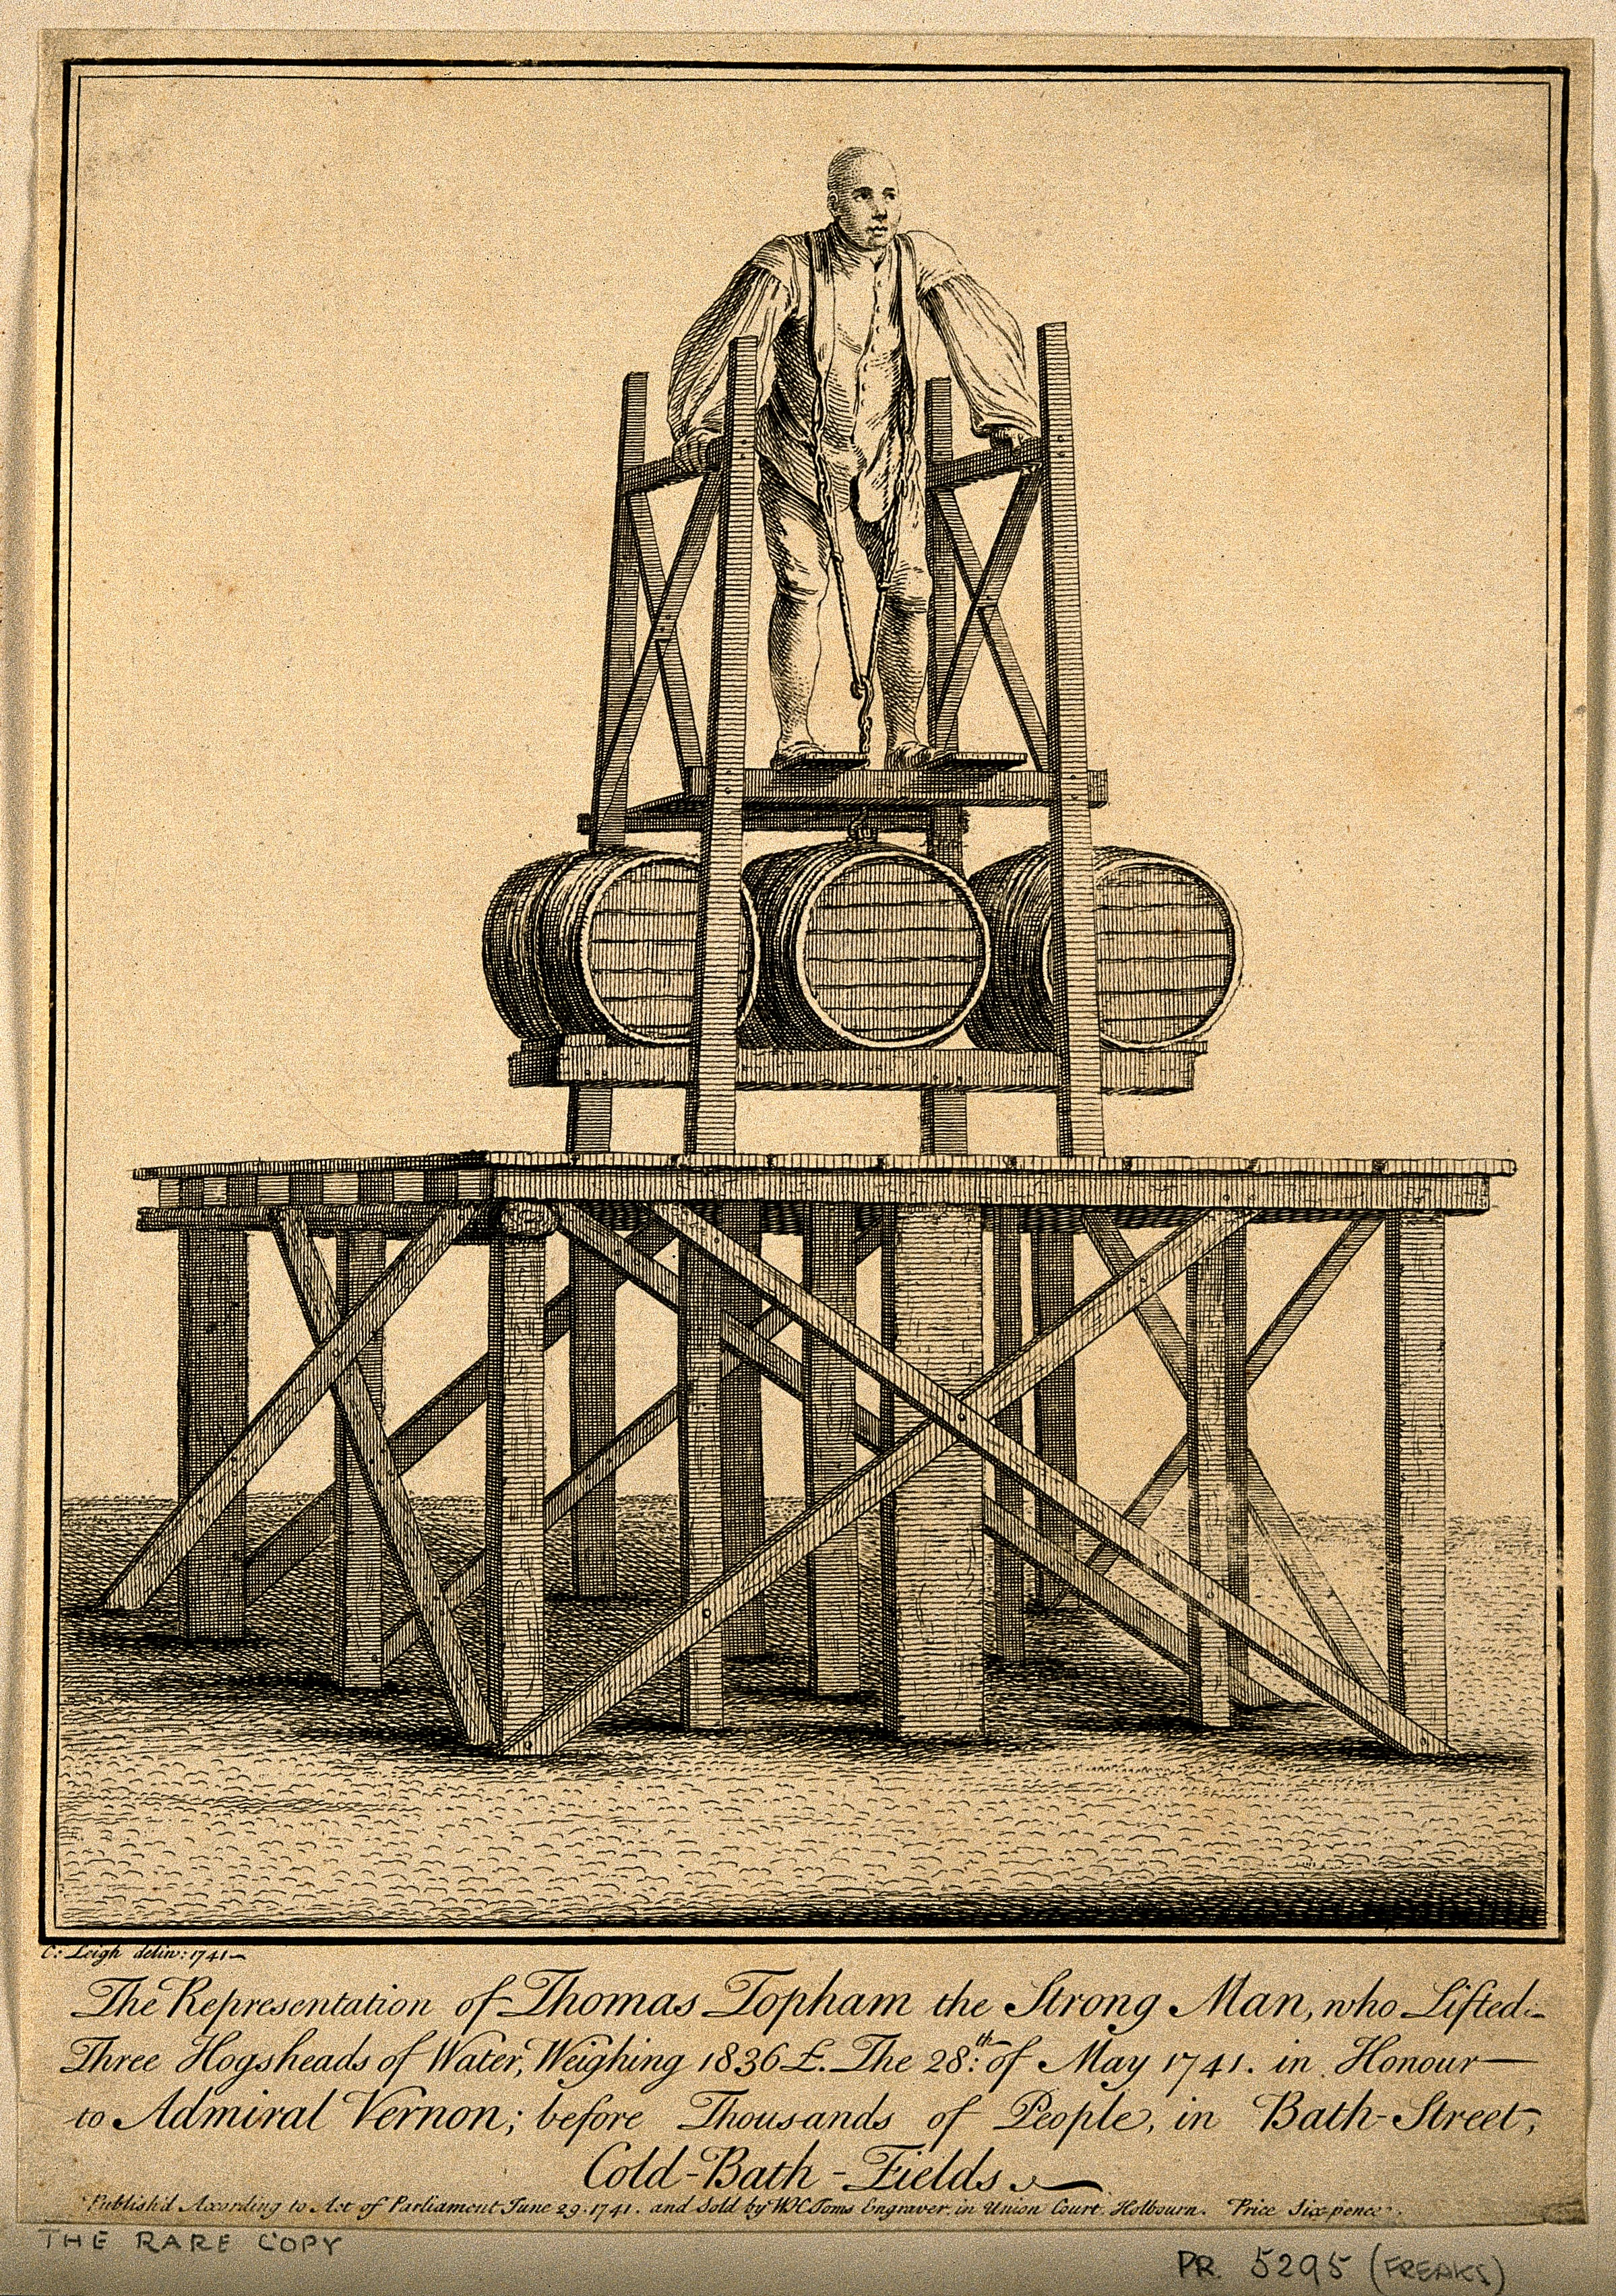 File:Thomas Topham, lifting 1836 lbs. Etching by C. Leigh, 1741